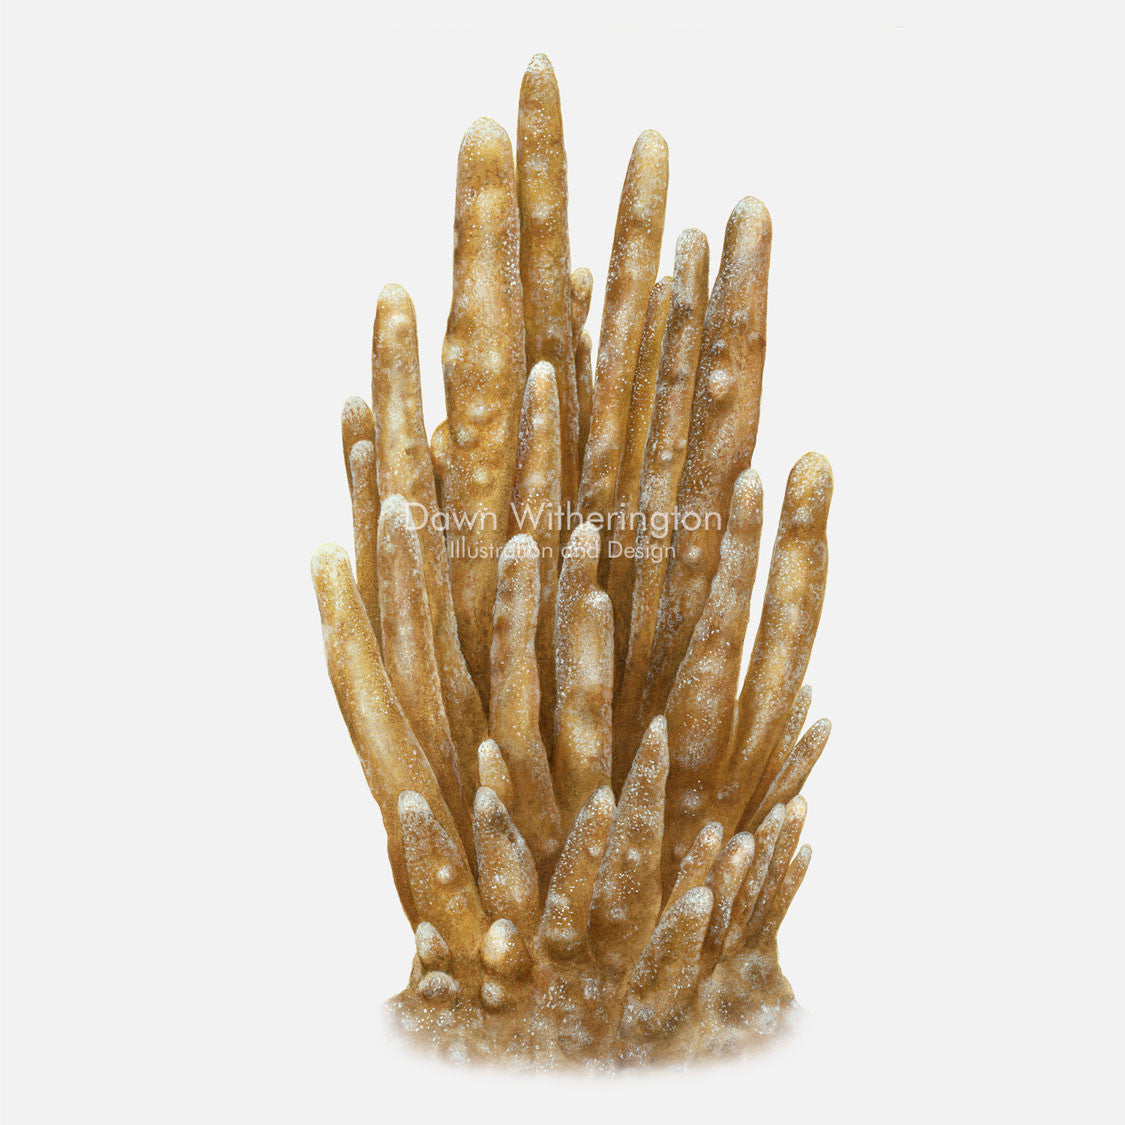 This beautiful illustration of lobed star coral, Dendrogyra cylindricus, is accurate in detail.